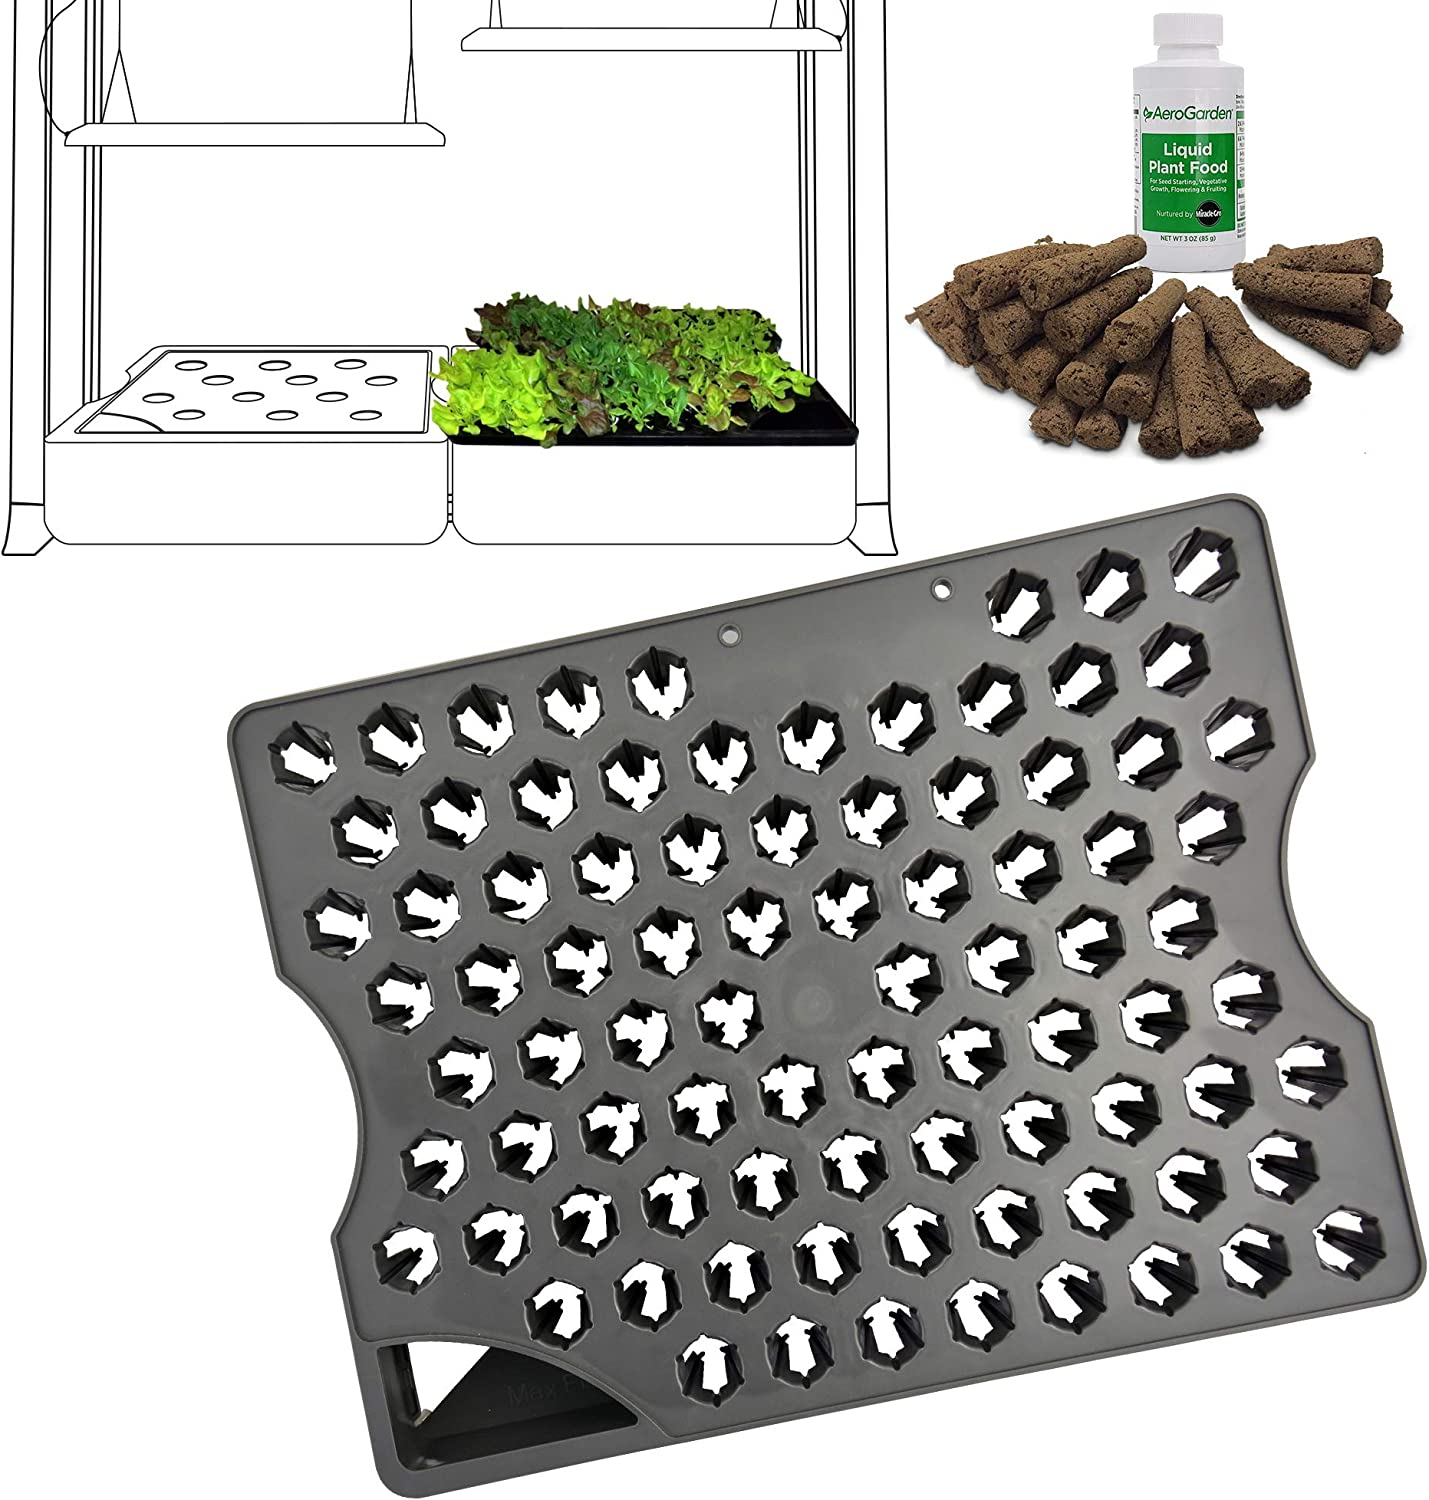 AeroGarden 800296-0100 Seed Starting System for Farm Models, Black